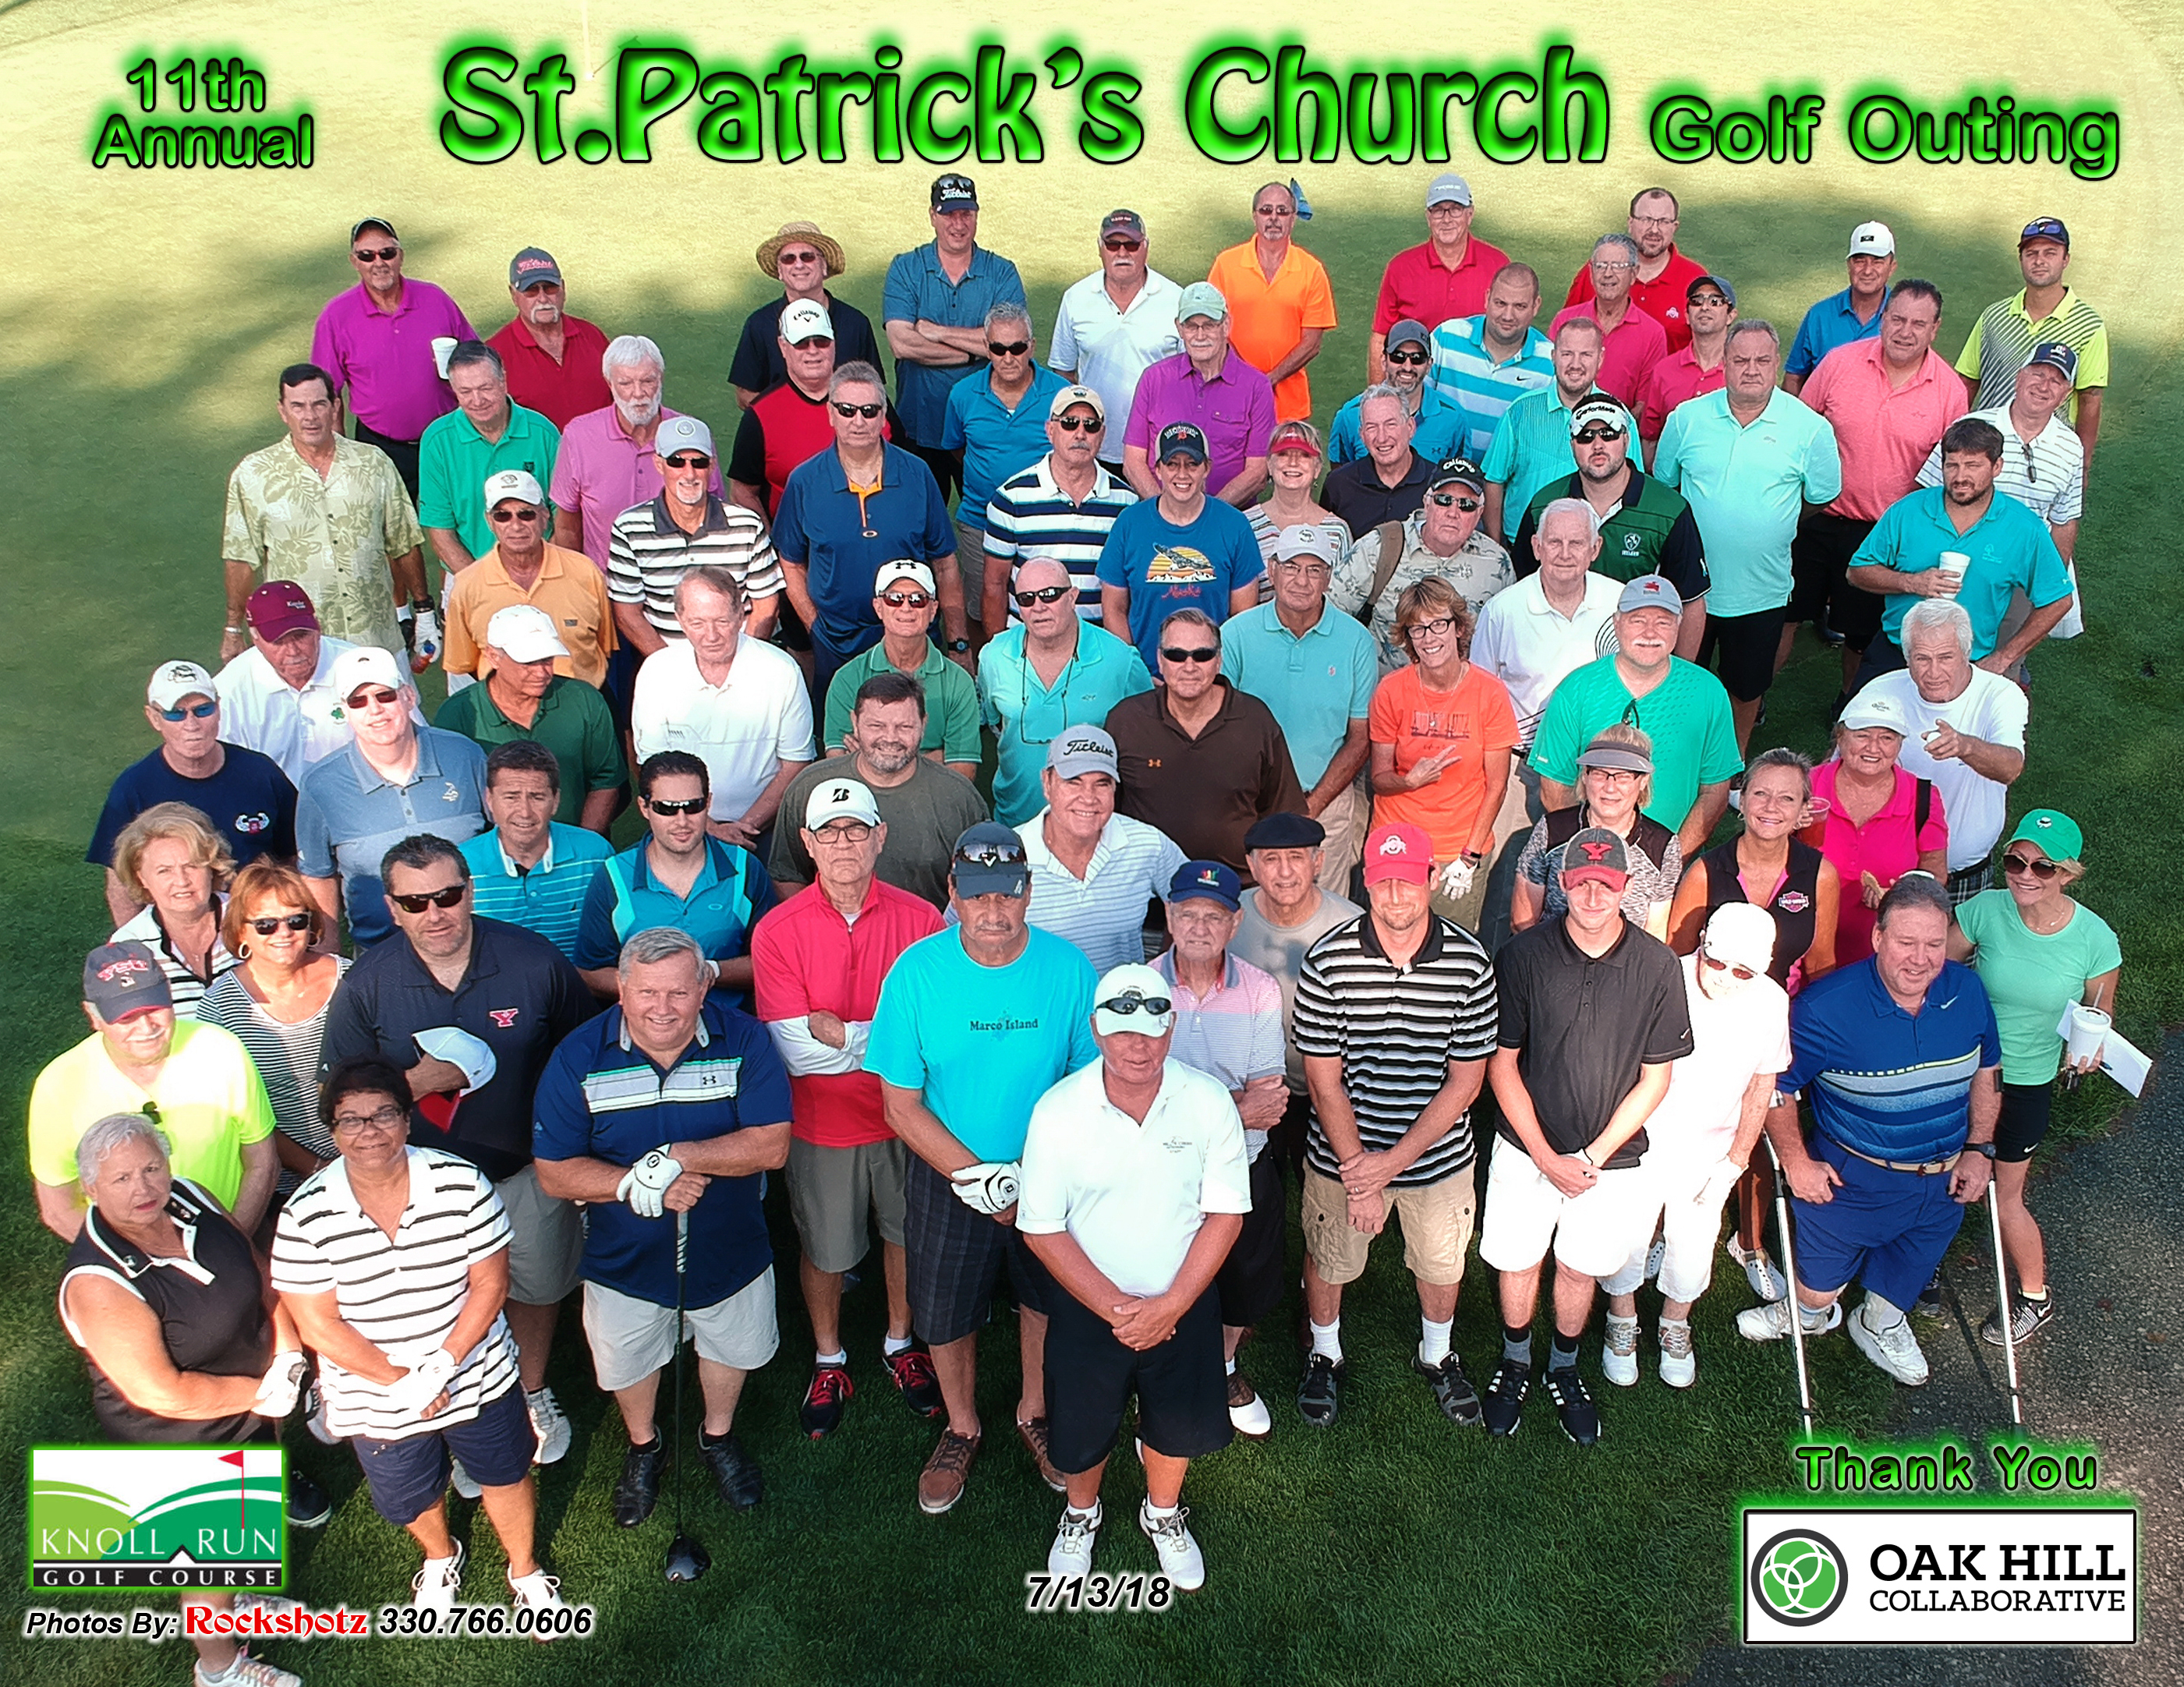 St Pat's Church Golf Outing